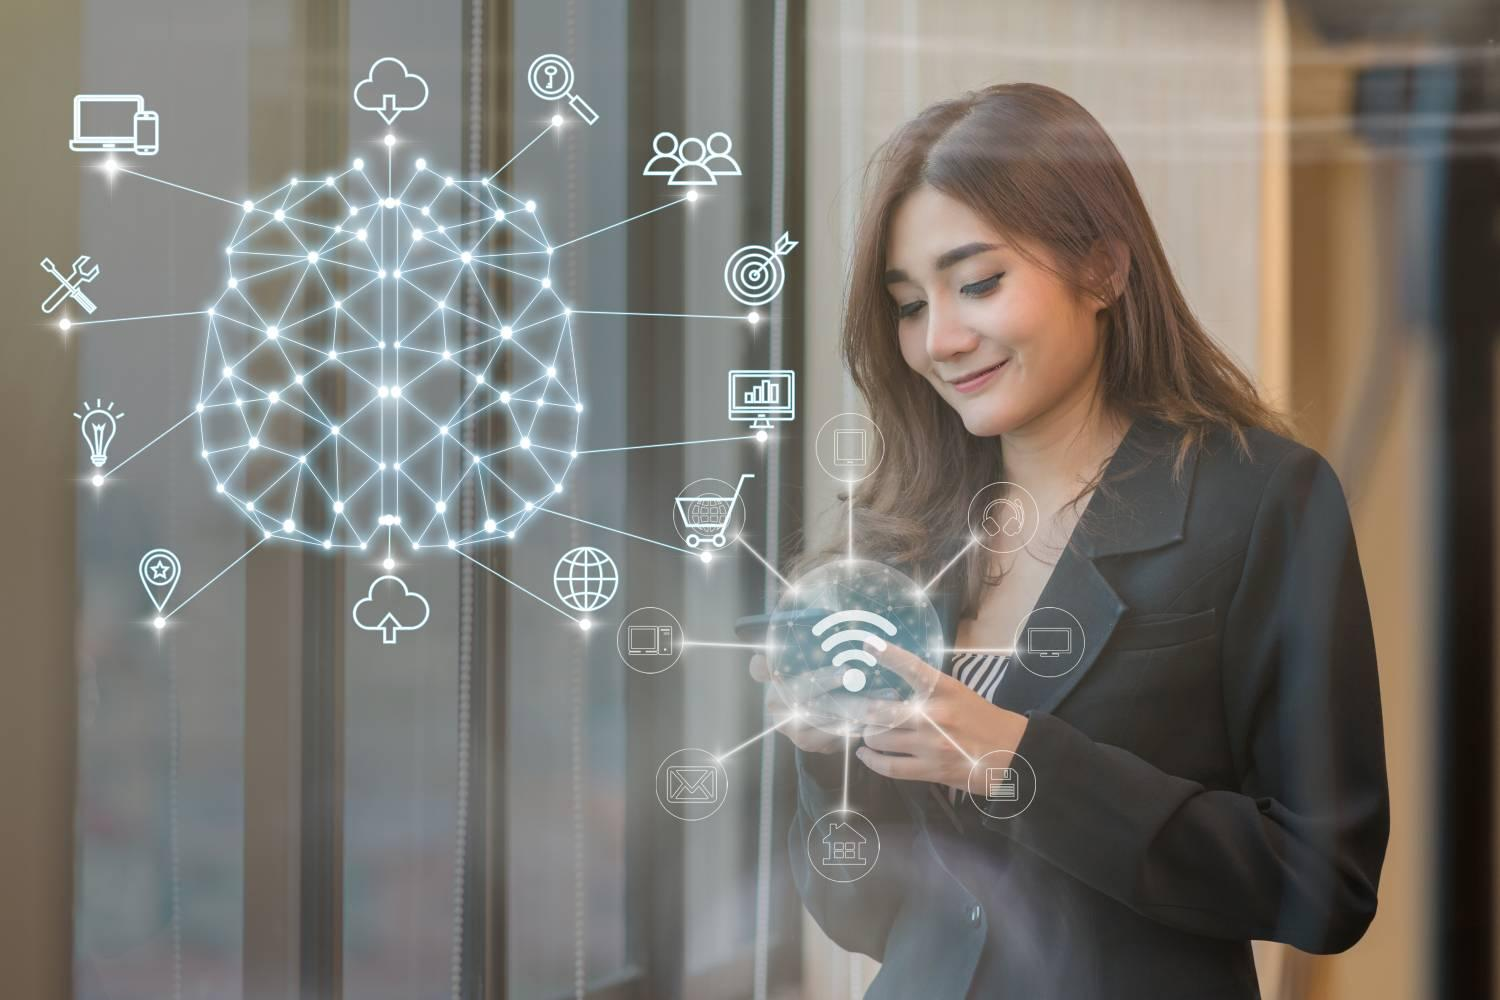 Asian Thai businesswoman using mobile smartphone to connect to AI and IoT driven omnichannel digital experiences